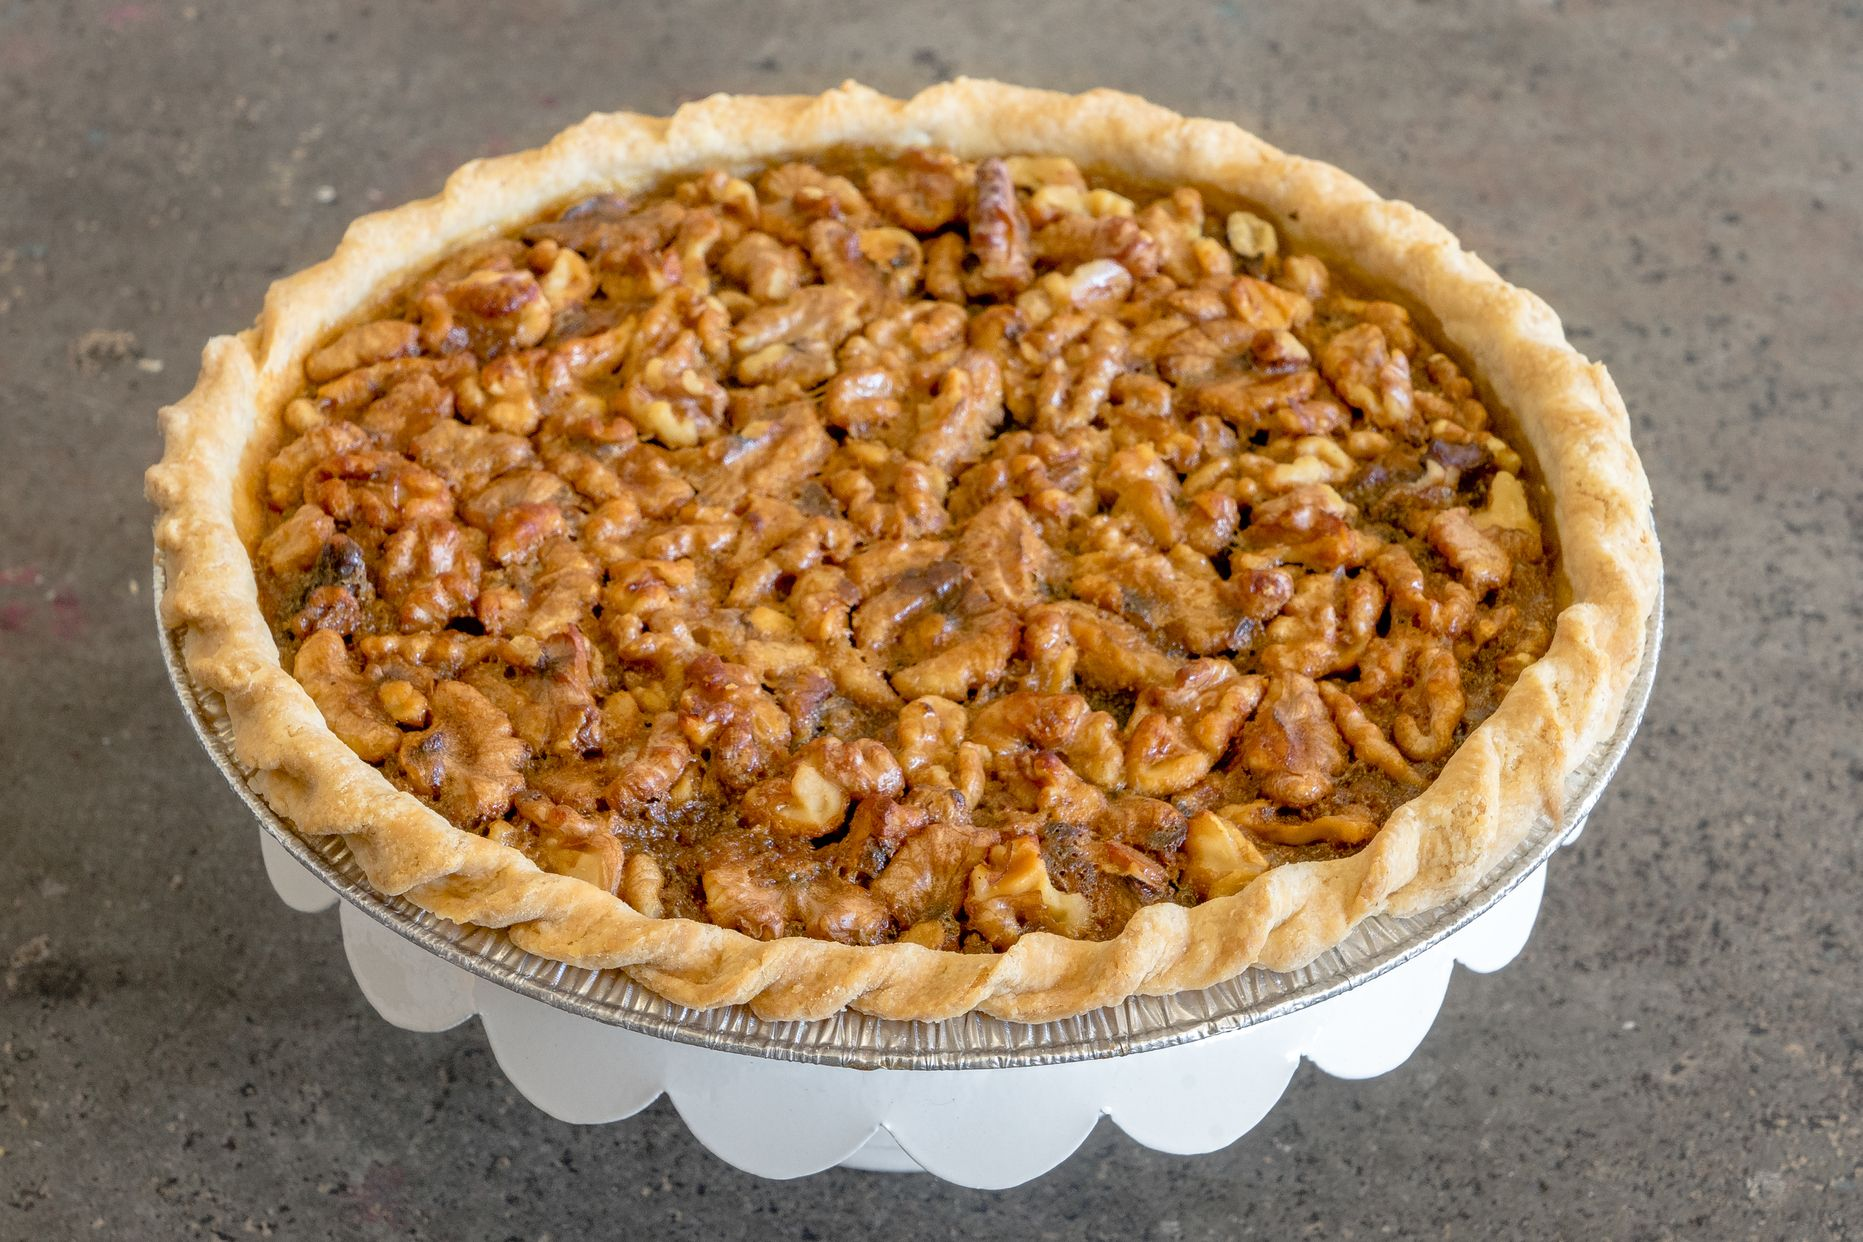 Instead of a classic pecan, this pie features California